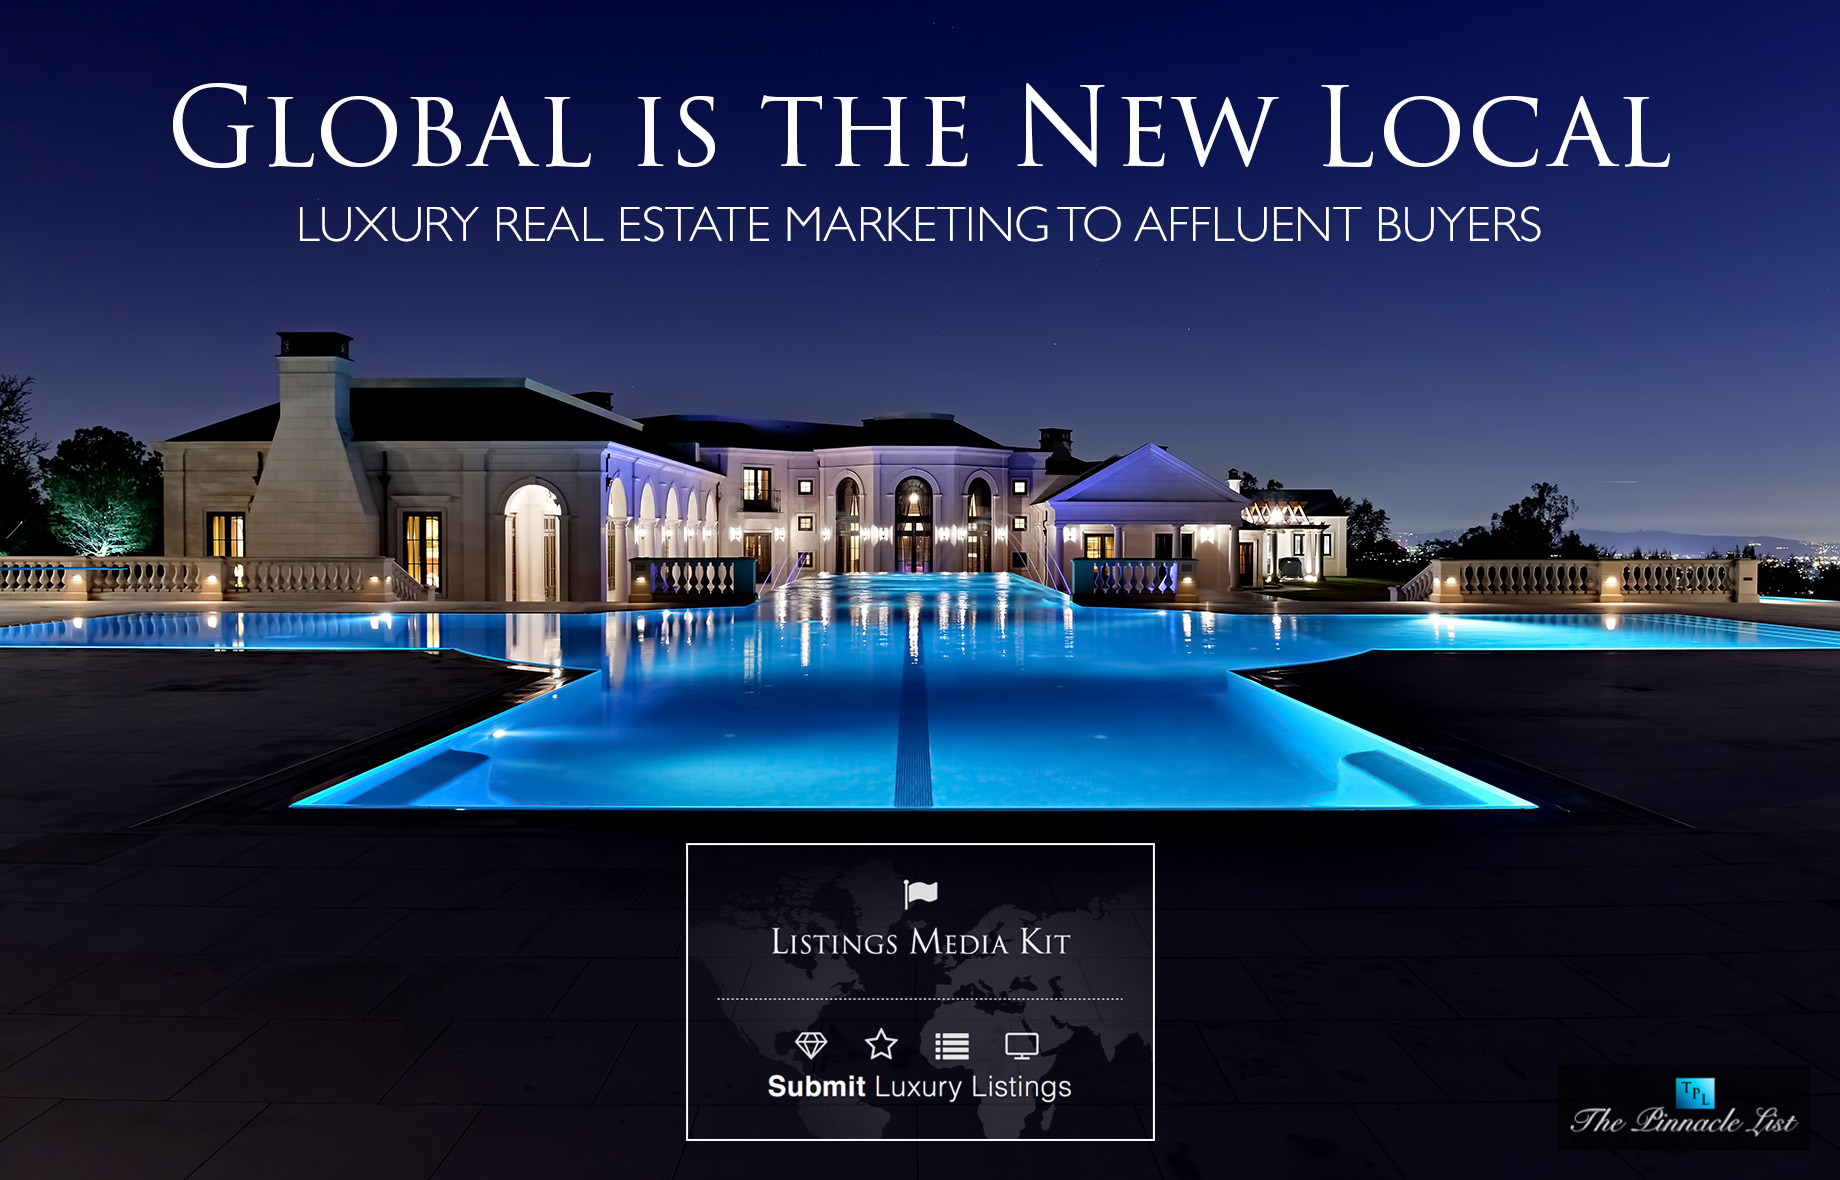 Global is the New Local for Luxury Real Estate Marketing to Affluent Buyers